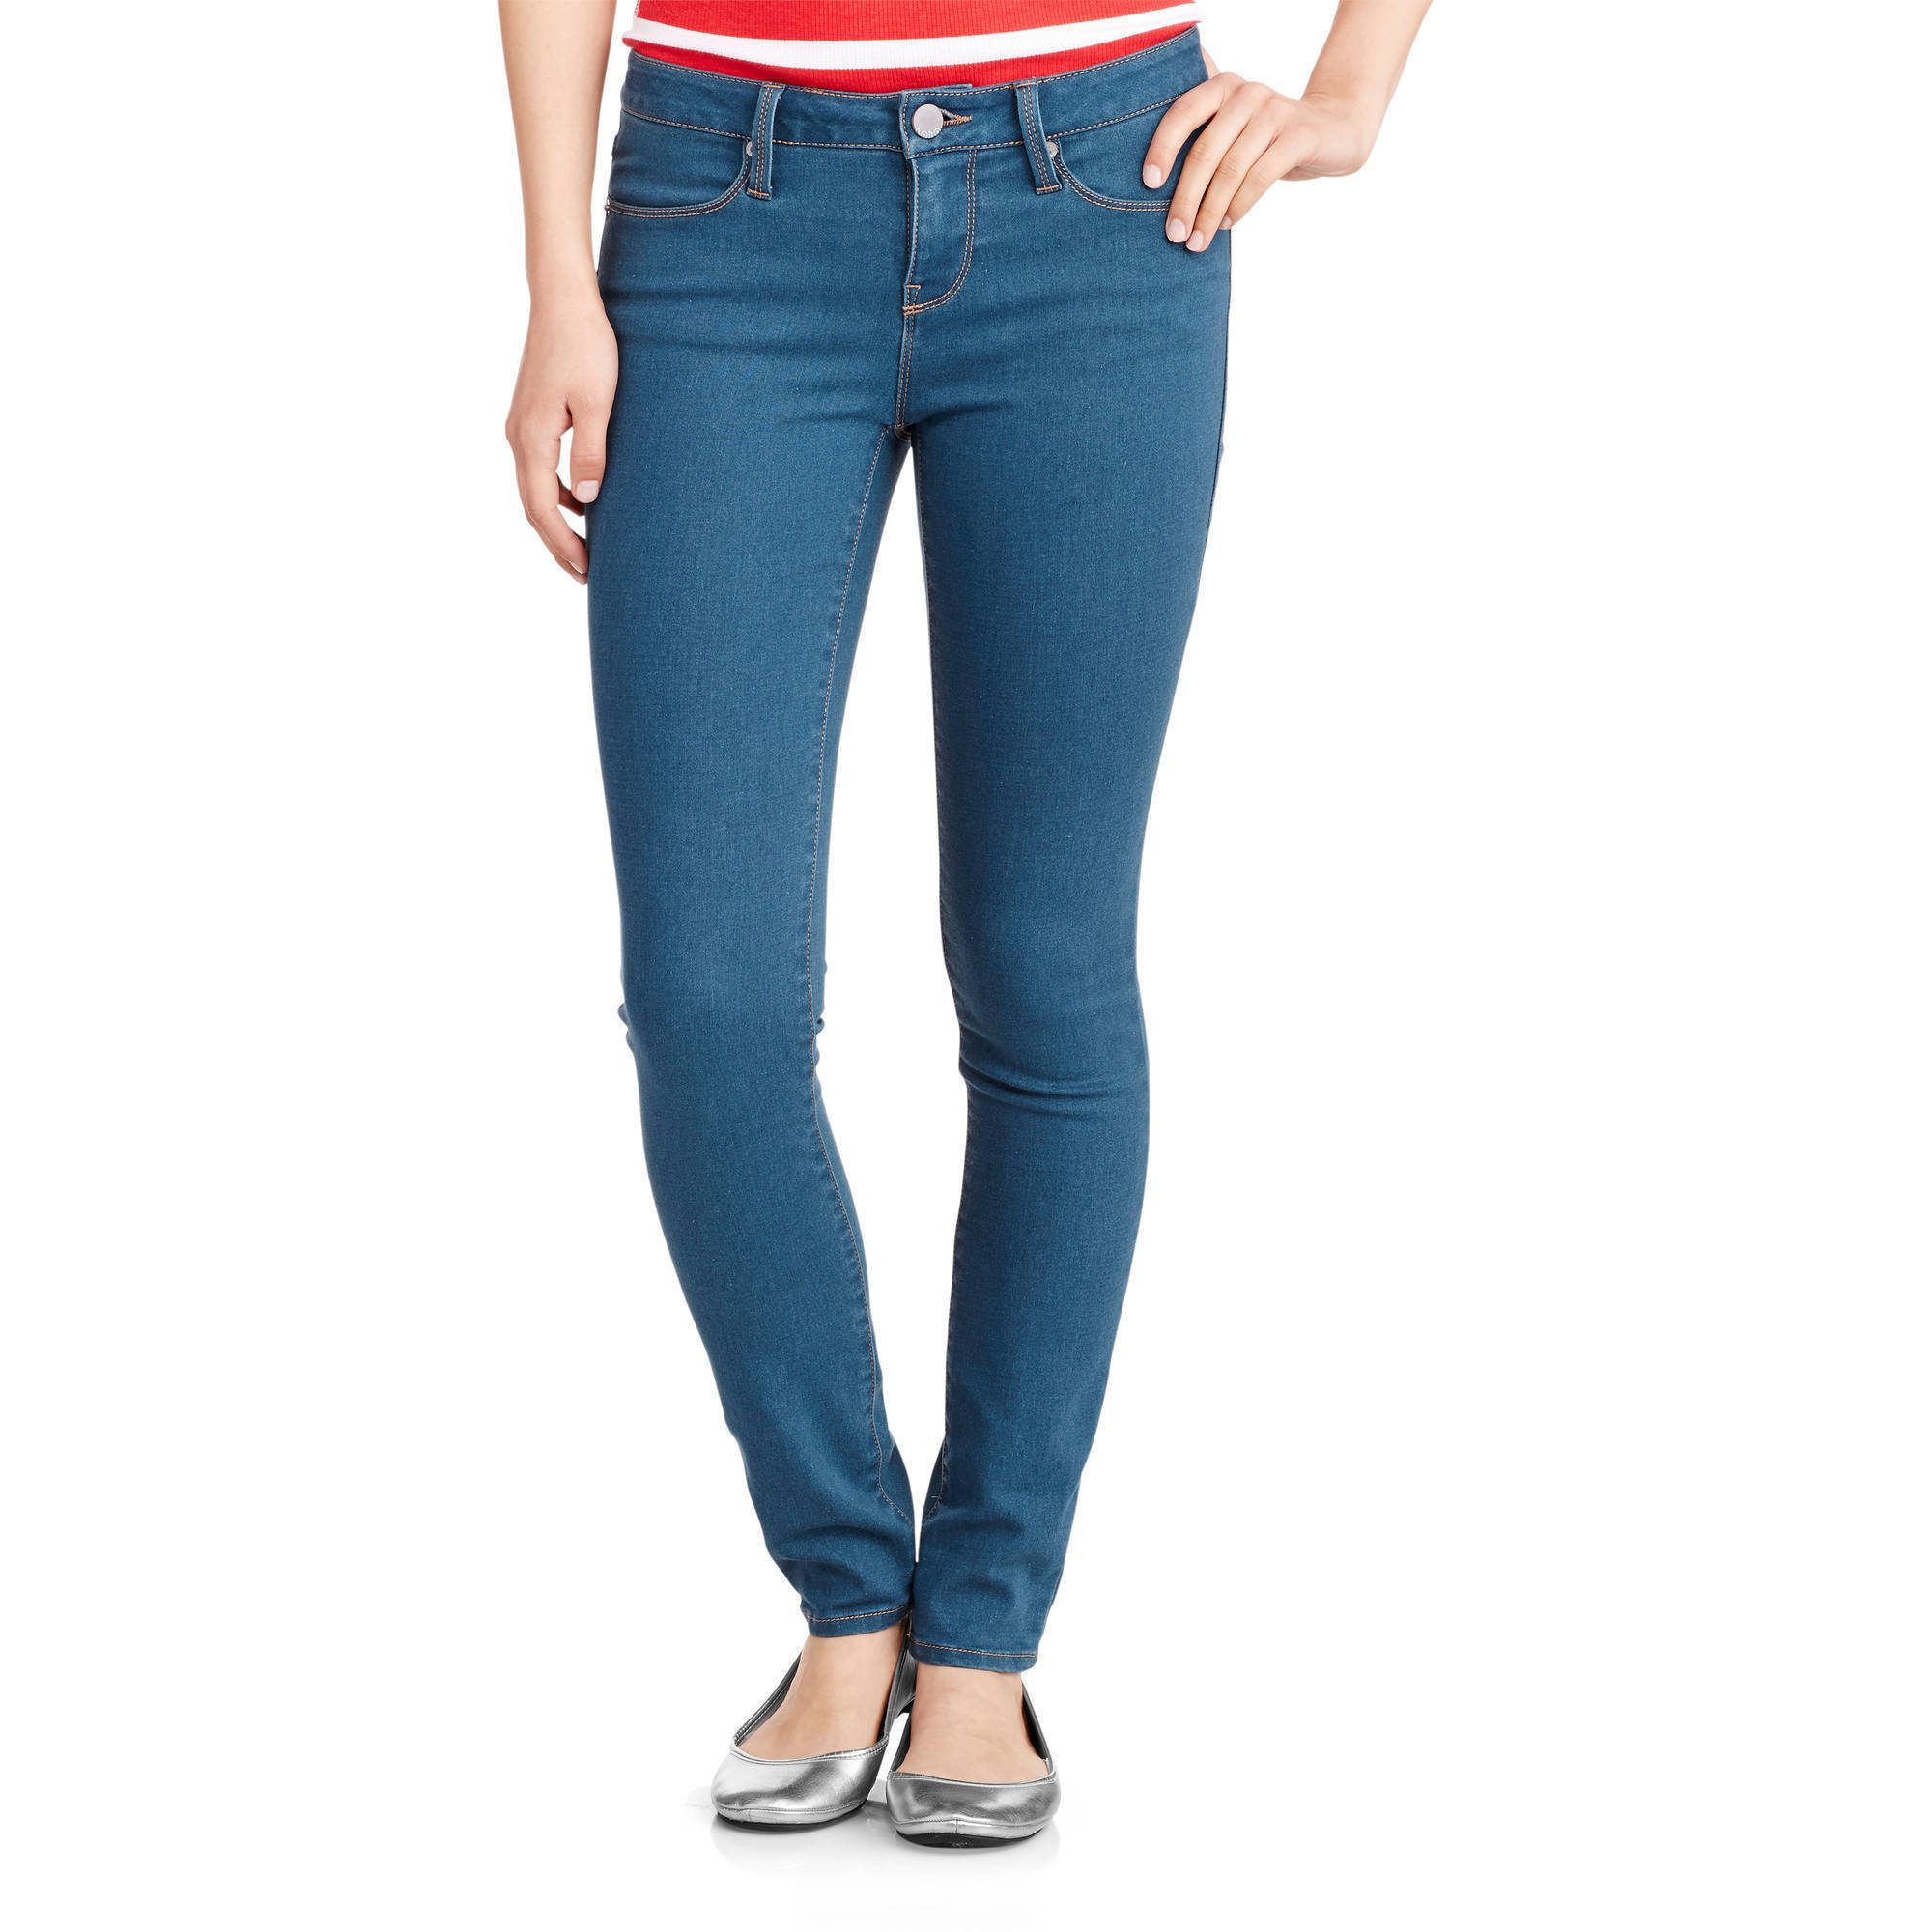 No Boundaries Juniors' Classic Skinny Jeans - Walmart.com